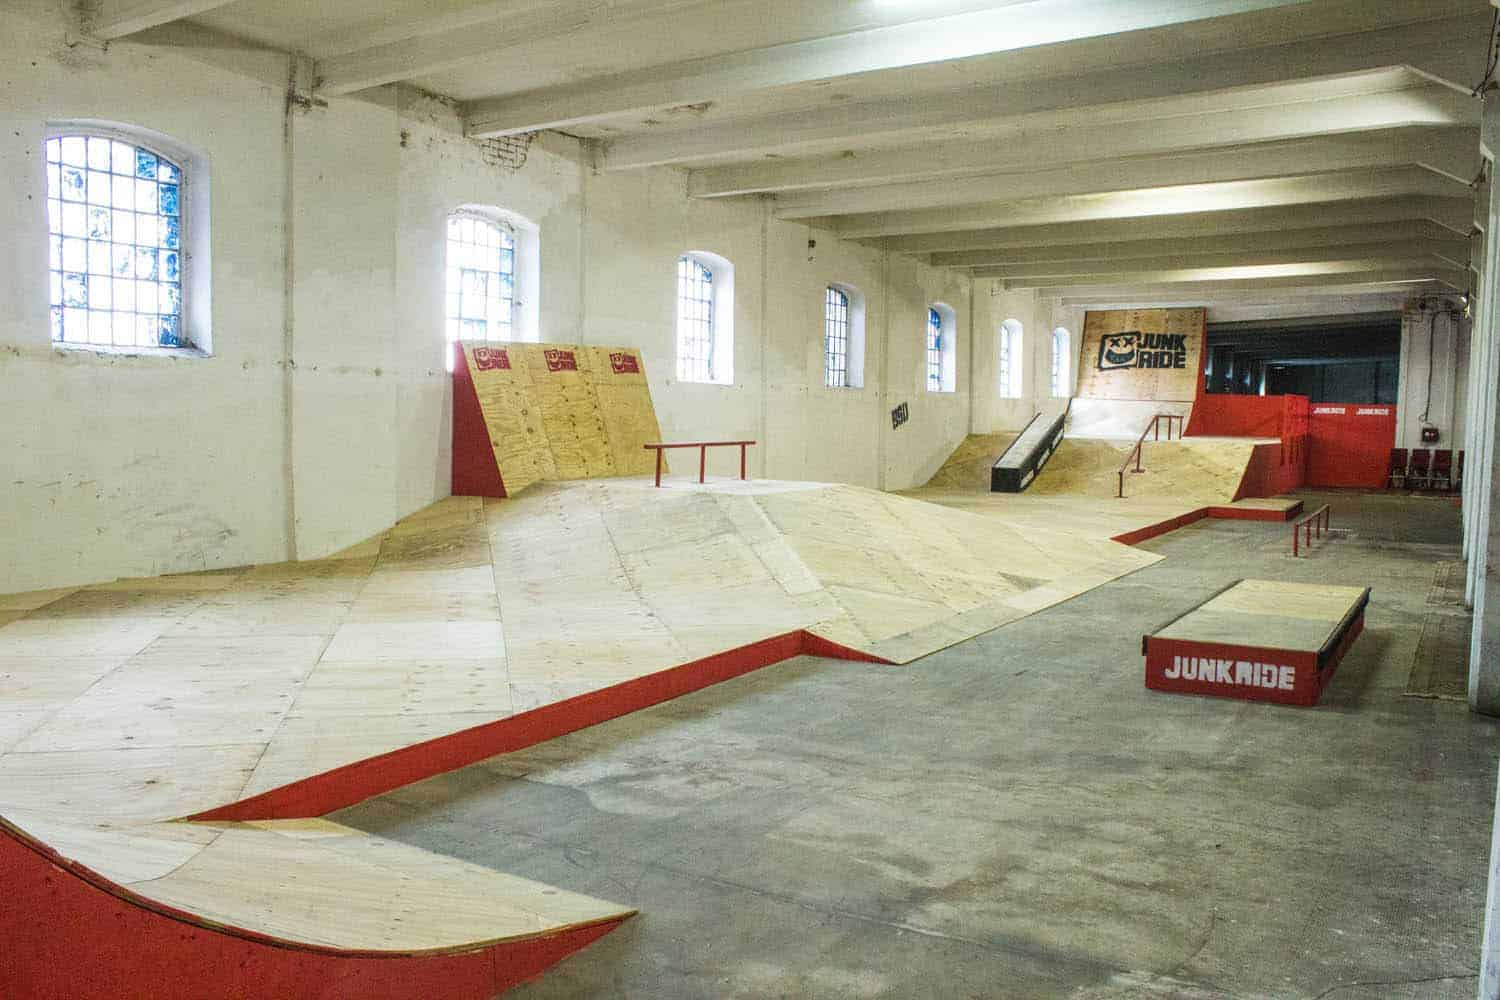 INDOOR SKATE/BMX ZONE – New street zone